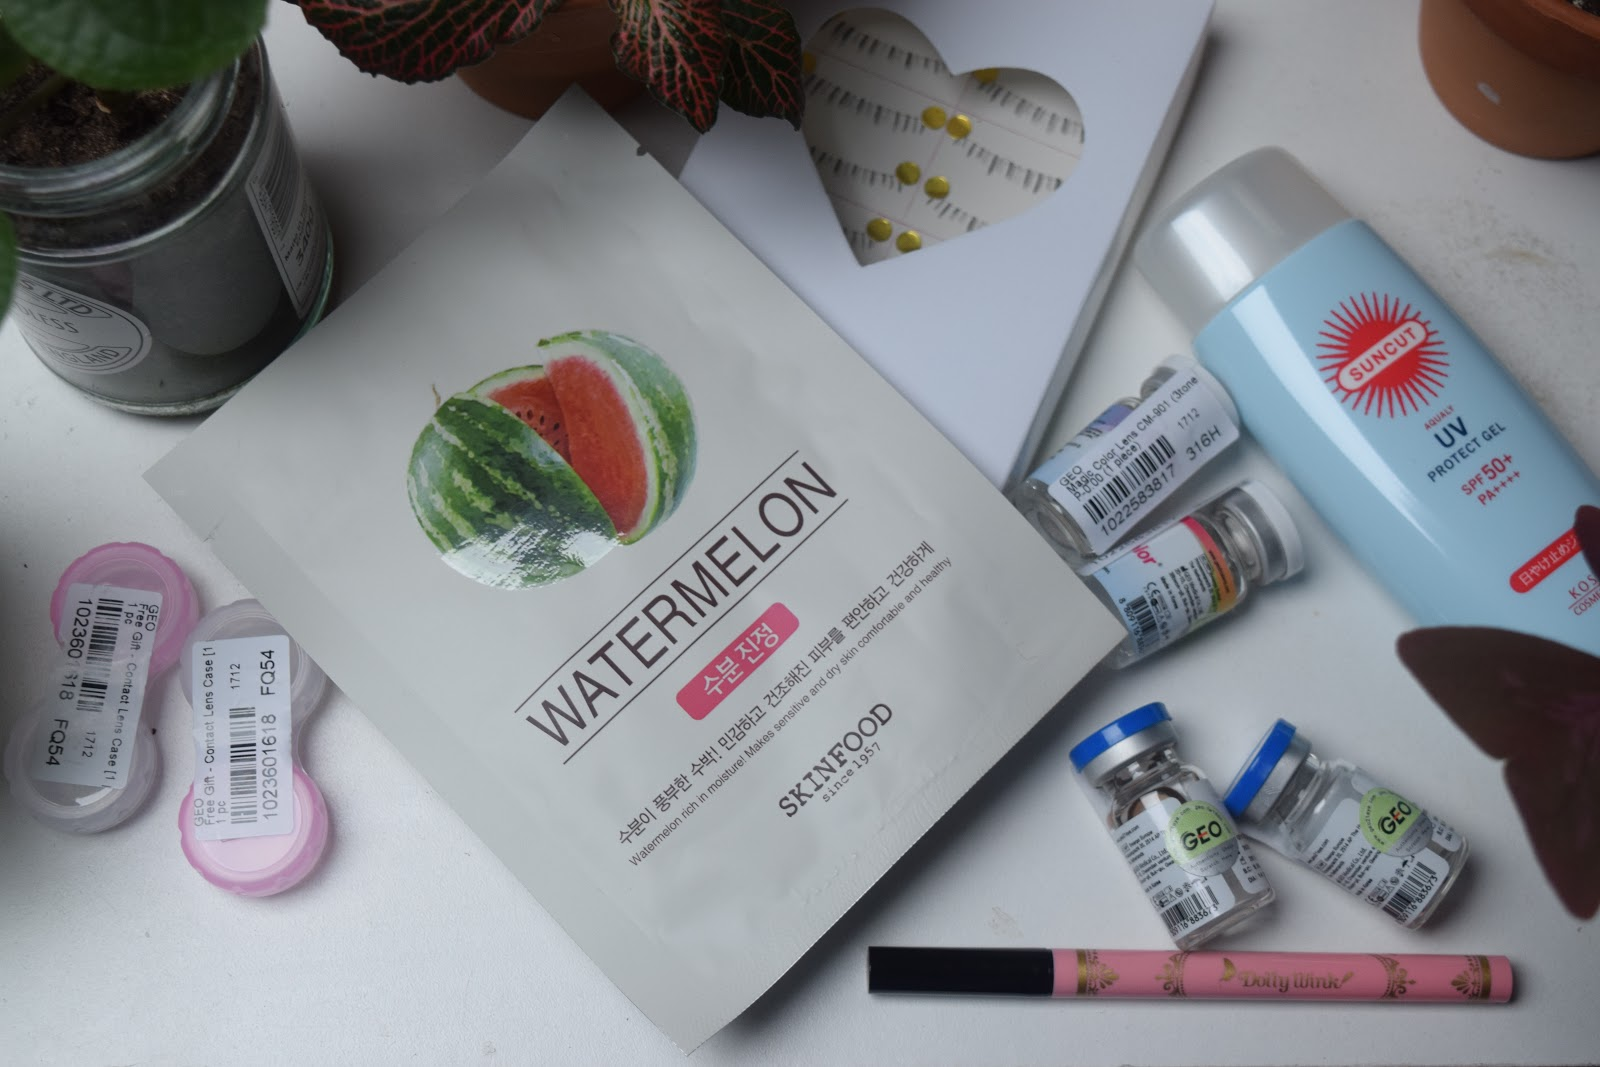 flatlay of Asian cosmetics and plants featuring Dolly Wink, Kosé, Skinfood, GEO